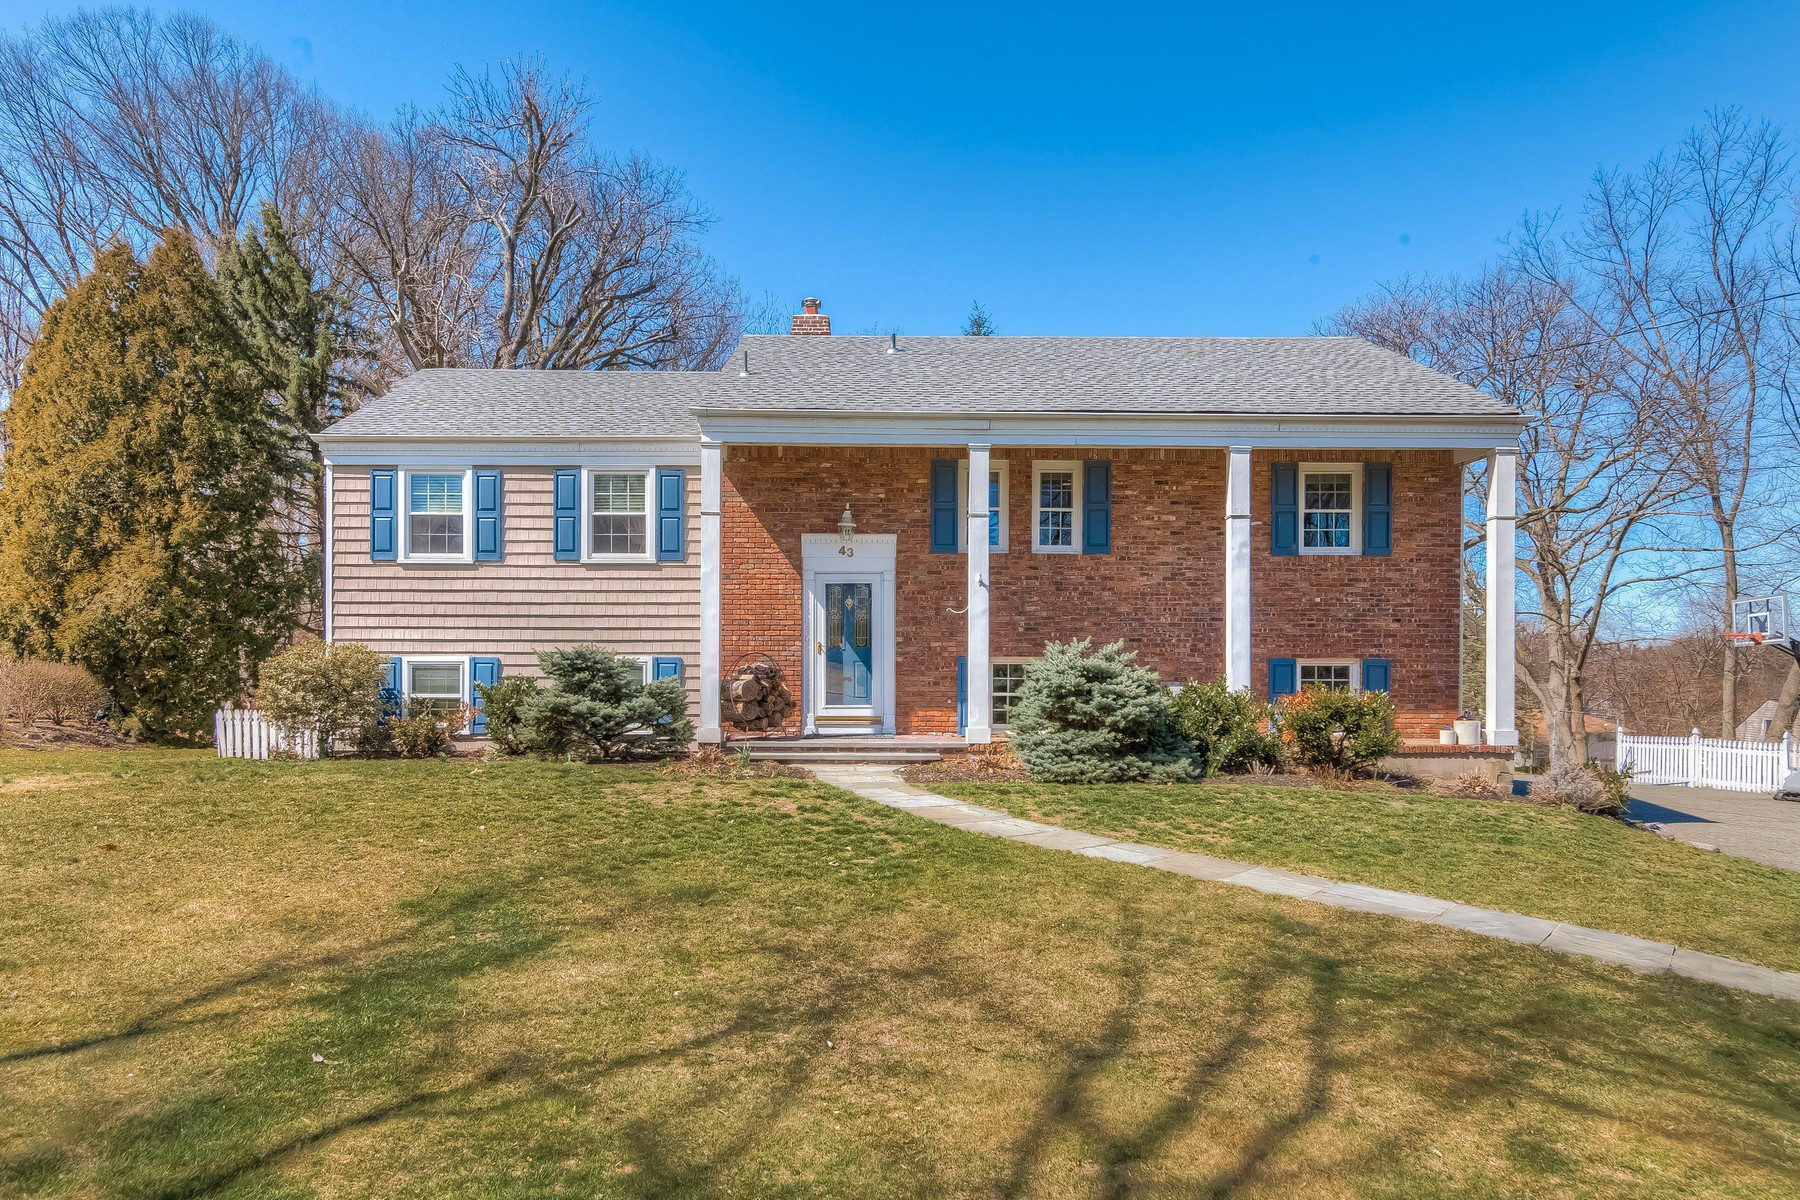 Single Family Home for Sale at Bright & Airy 43 Chimney Ridge Drive Morris Township, New Jersey 07960 United States